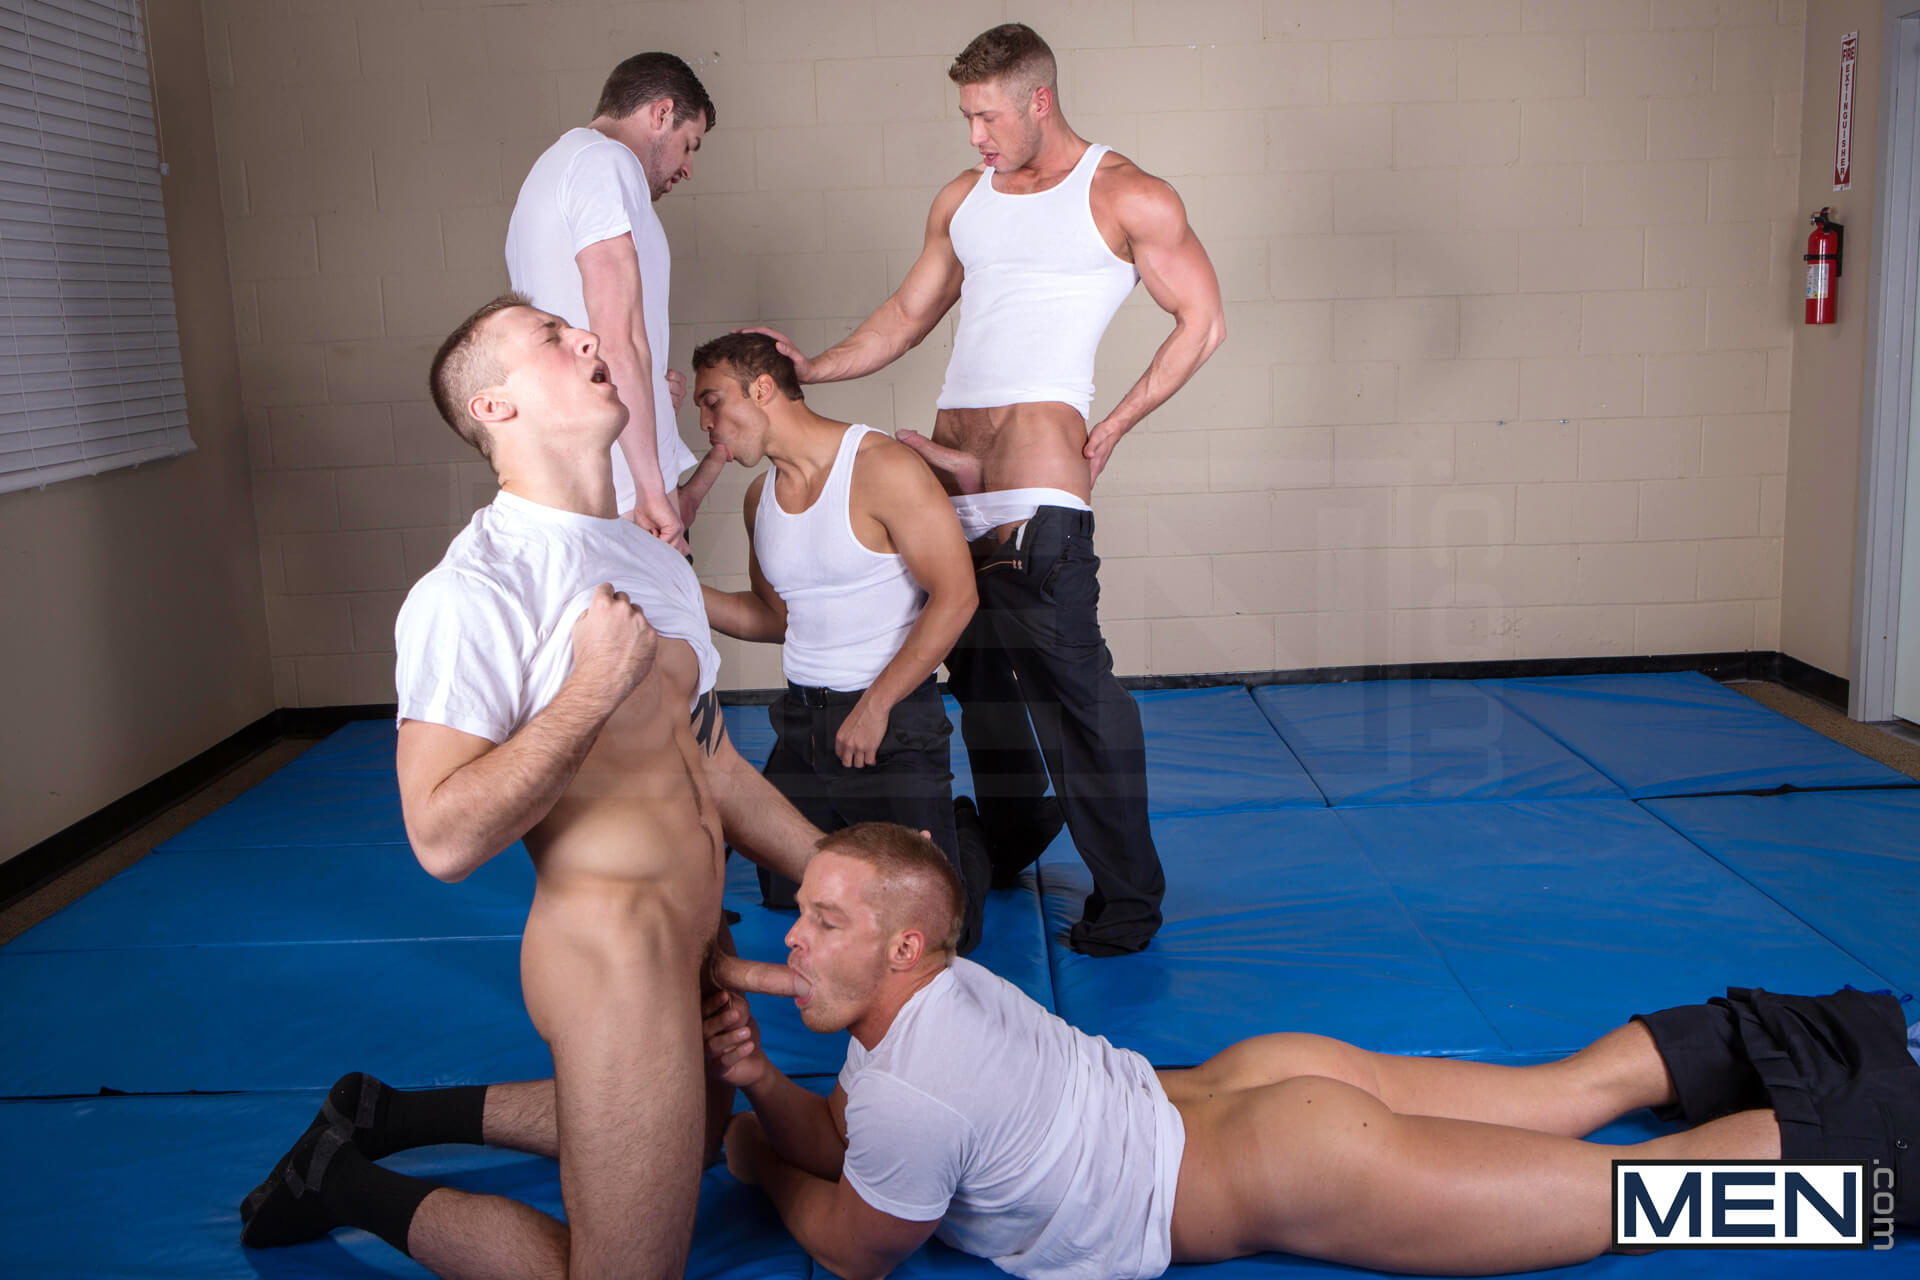 men jizz orgy men in blue part 3 andrew stark connor kline johnny ryder liam magnuson rocco reed gay porn blog image 11